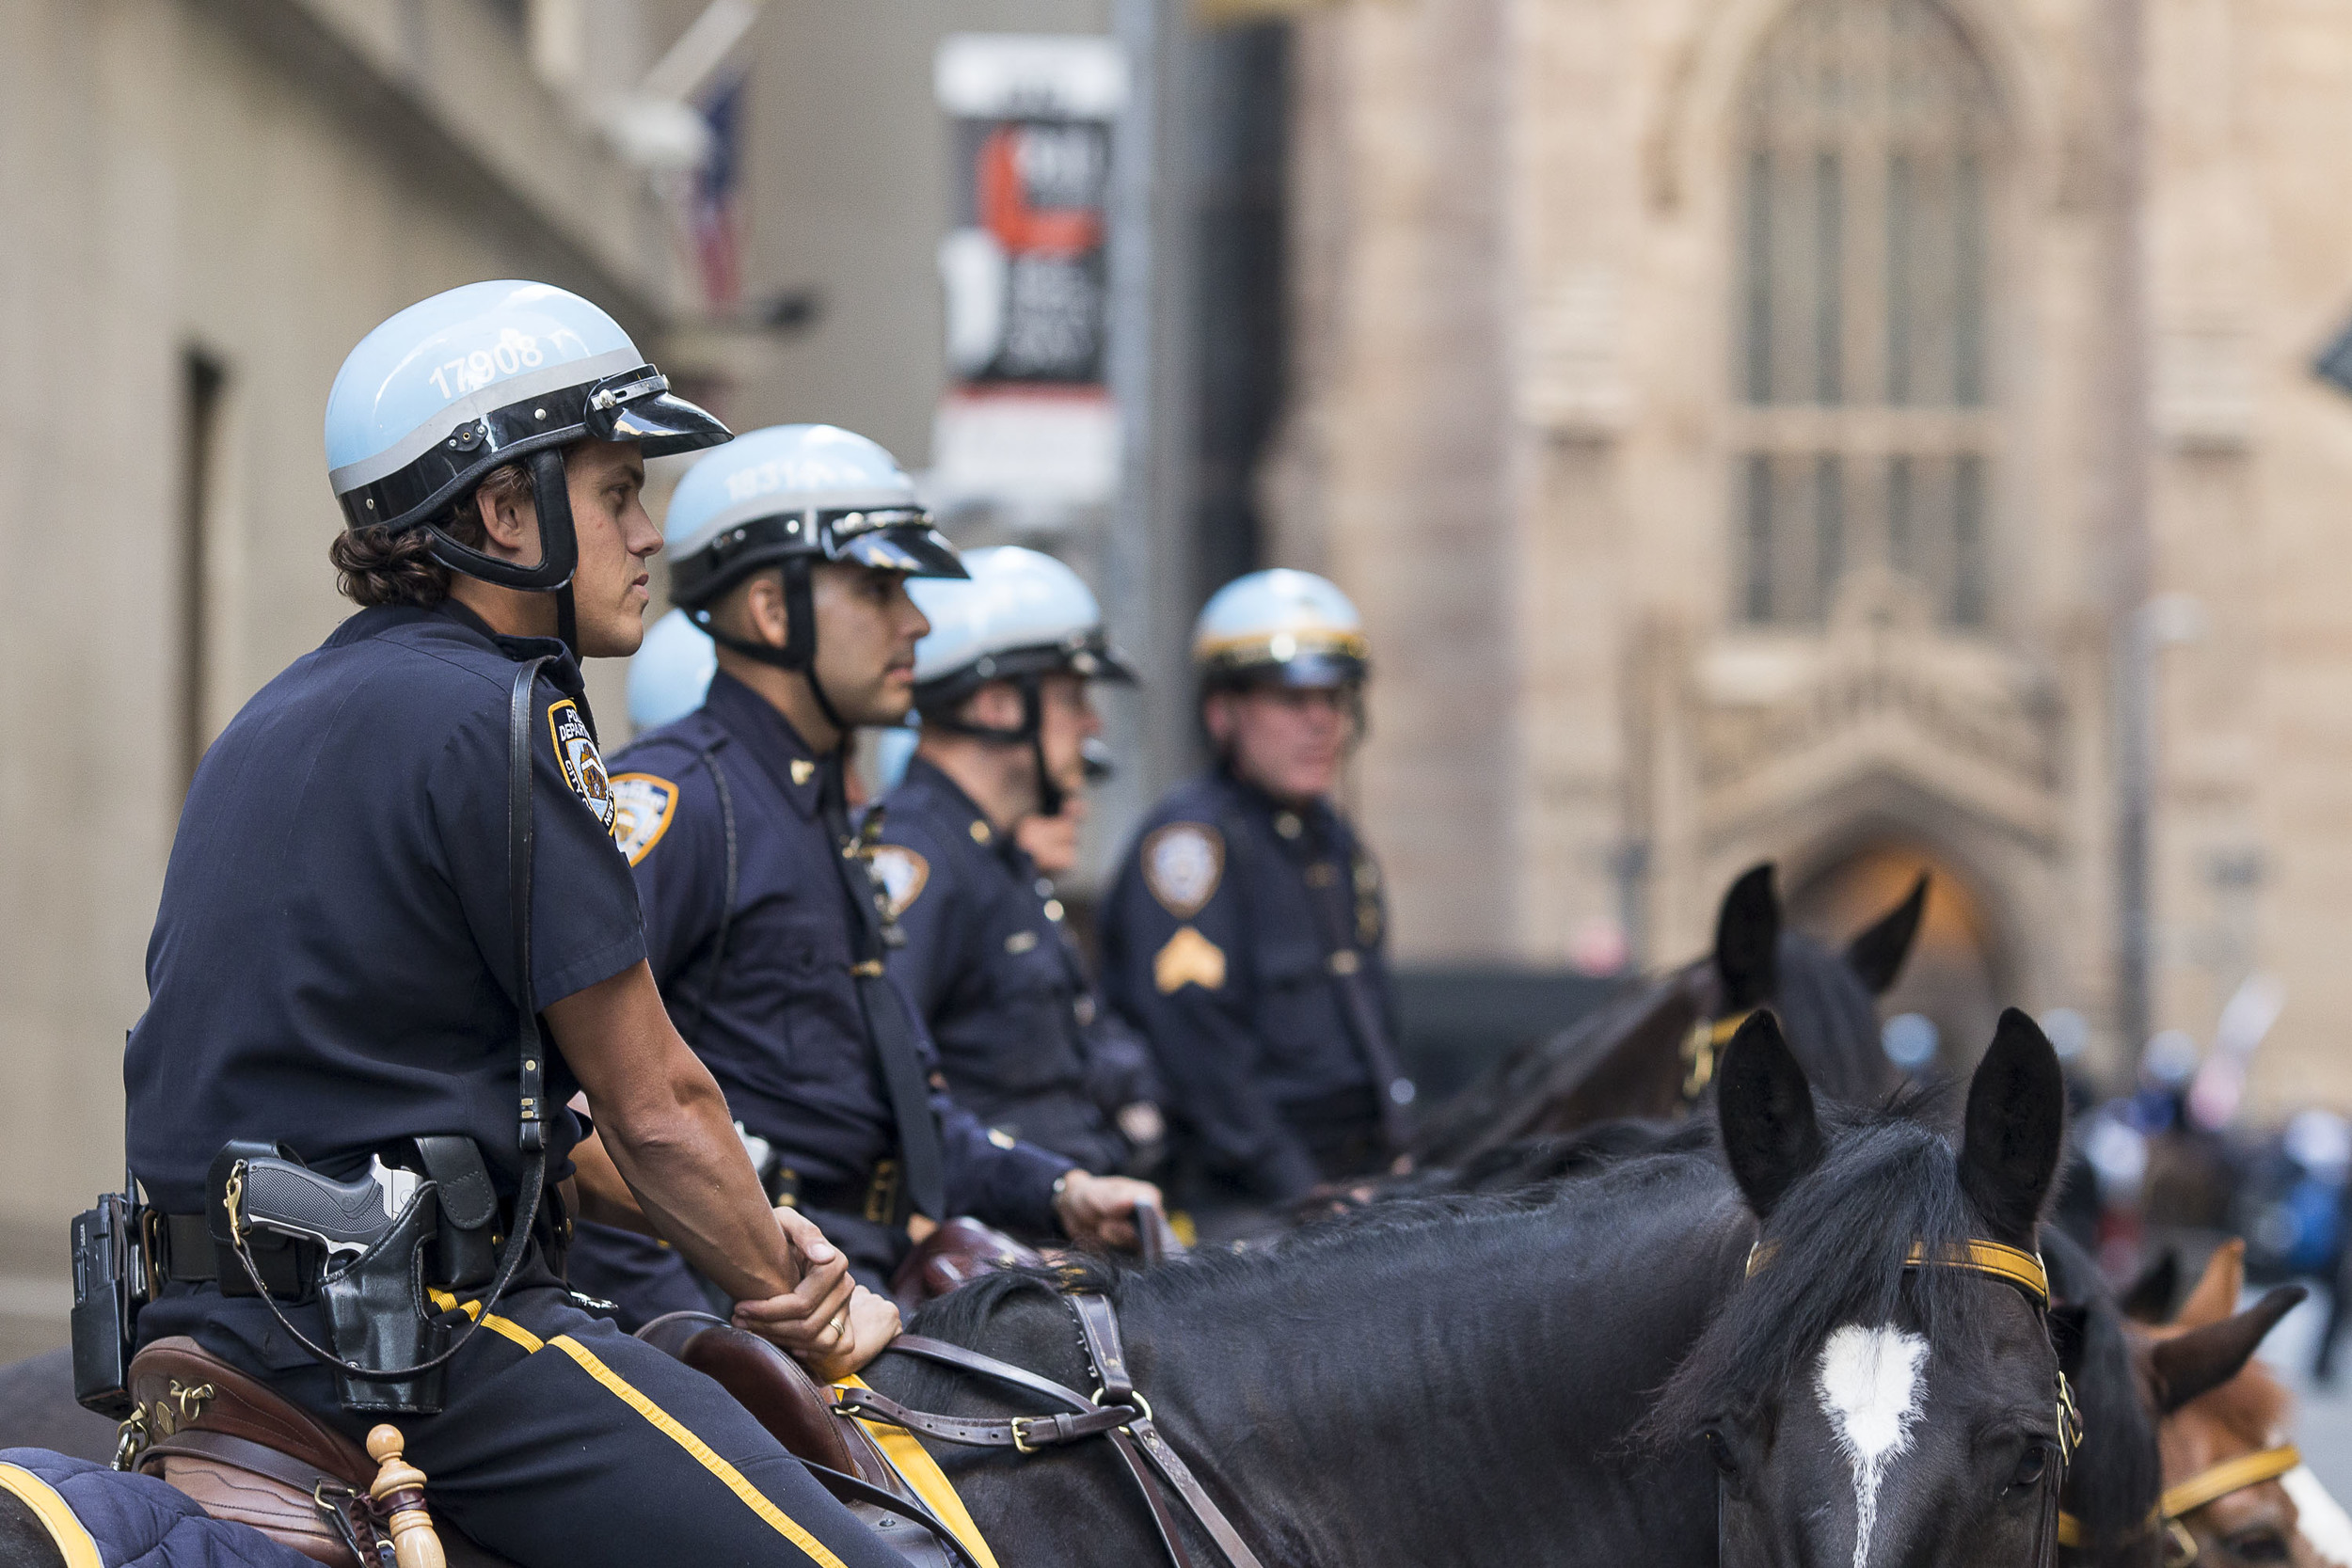 In anticipation of the protest, NYPD mounted patrolmen work to completely blockade the corner of Wall Street and Broad Street in front of the Stock Exchange.